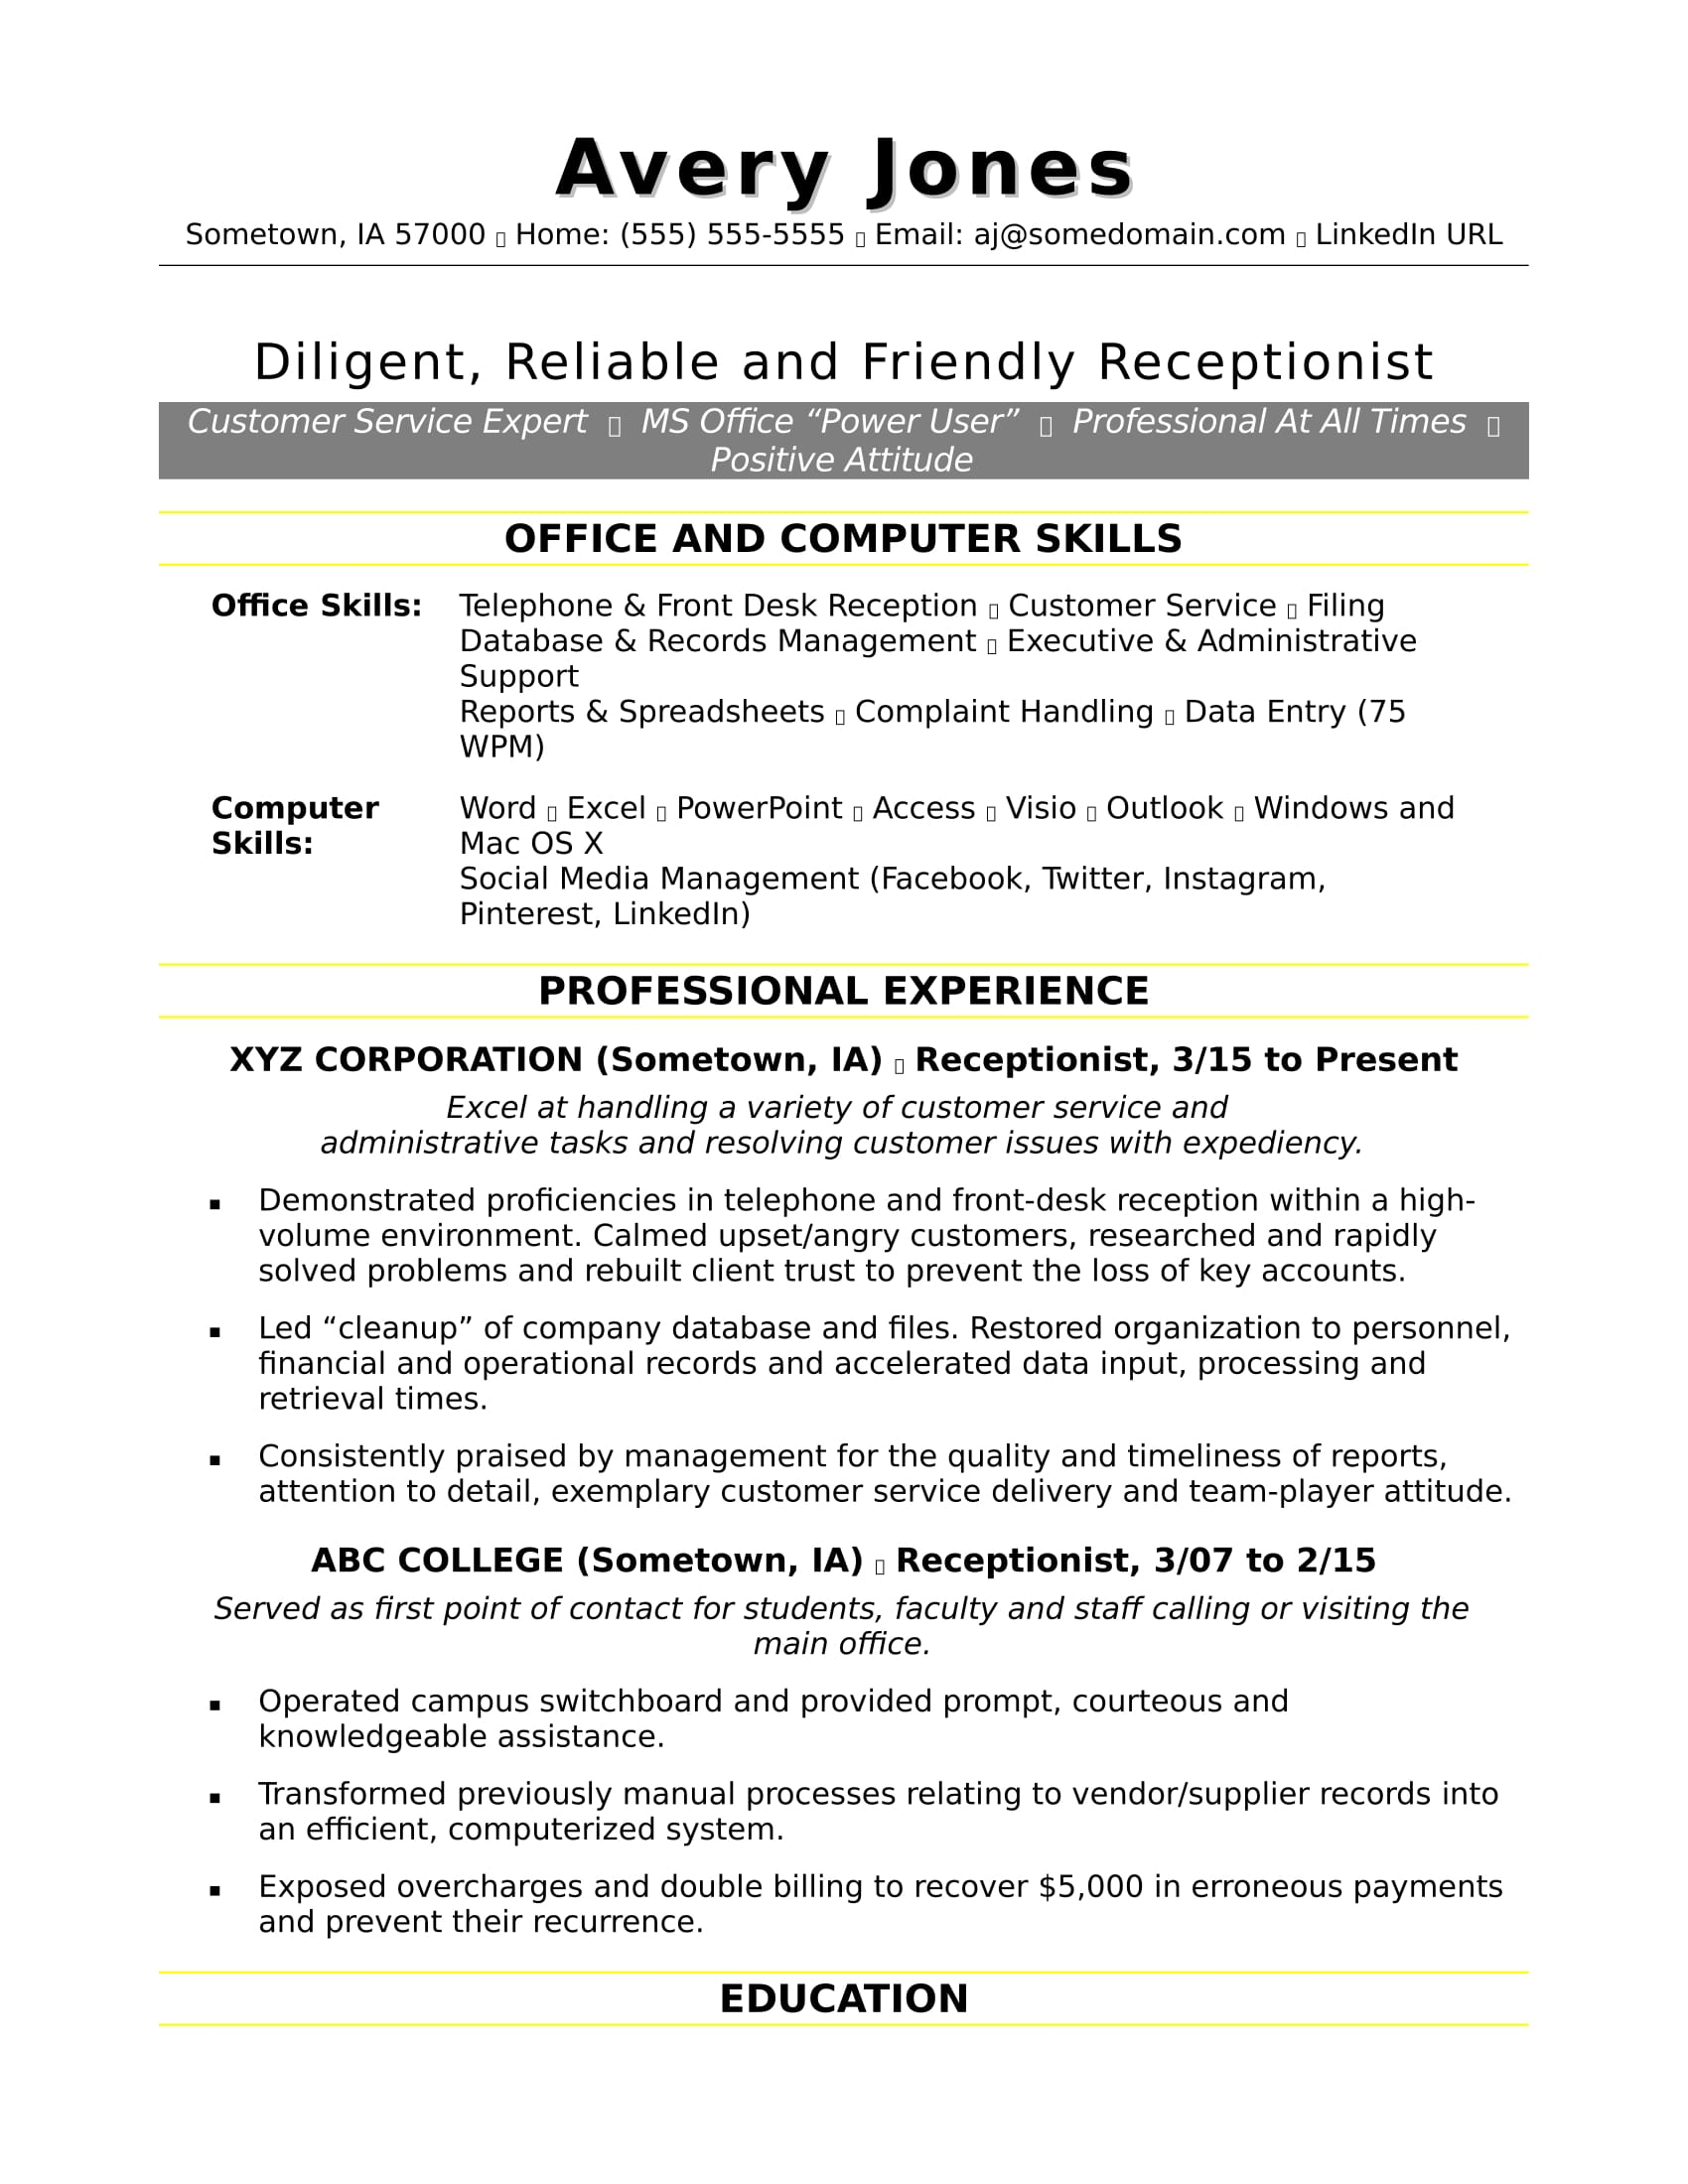 Sample Resume For A Receptionist  Skills To Add To A Resume